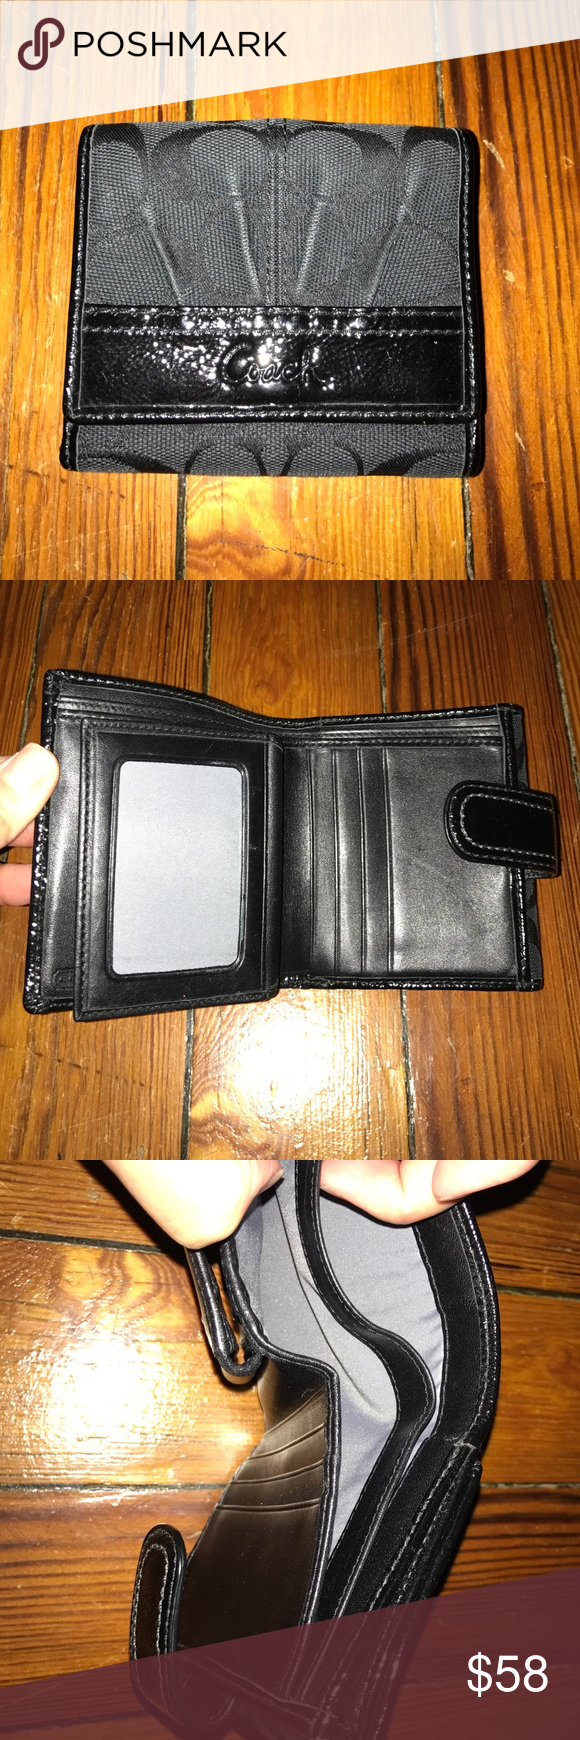 Coach Wallet - Used Coach Wallet - Black w/ credit card and coin slots USED, GREAT CONDITION Coach Bags Wallets